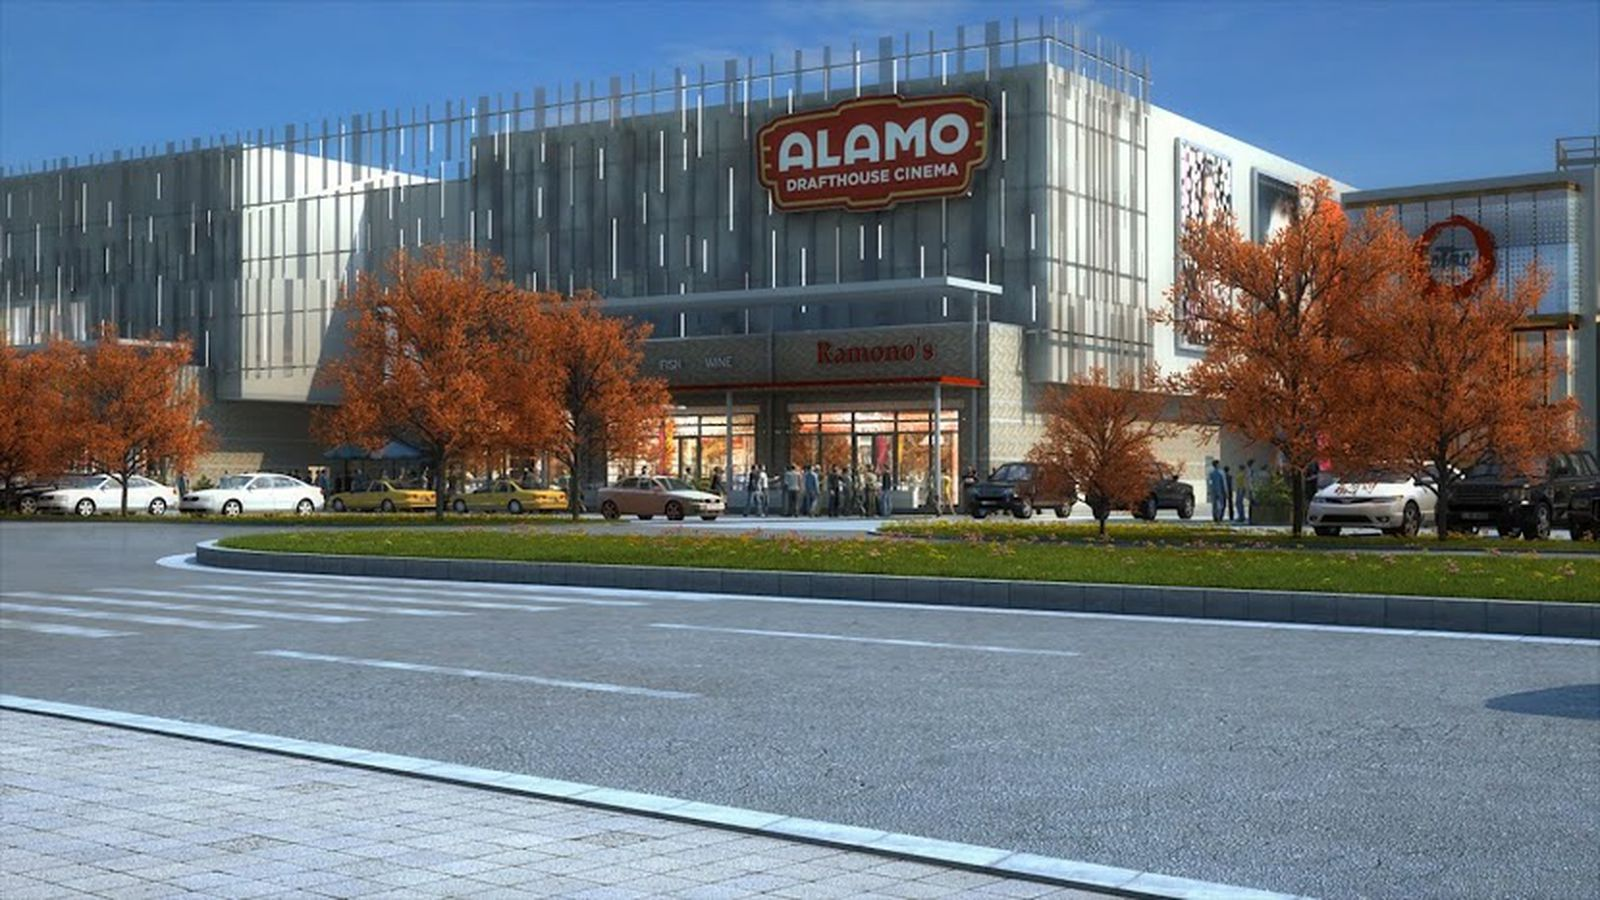 the alamo drafthouse Painting over the past: the drafthouse removed a controversial mural at the alamo south lamar as a sign of moving beyond accusations of mismanagement.